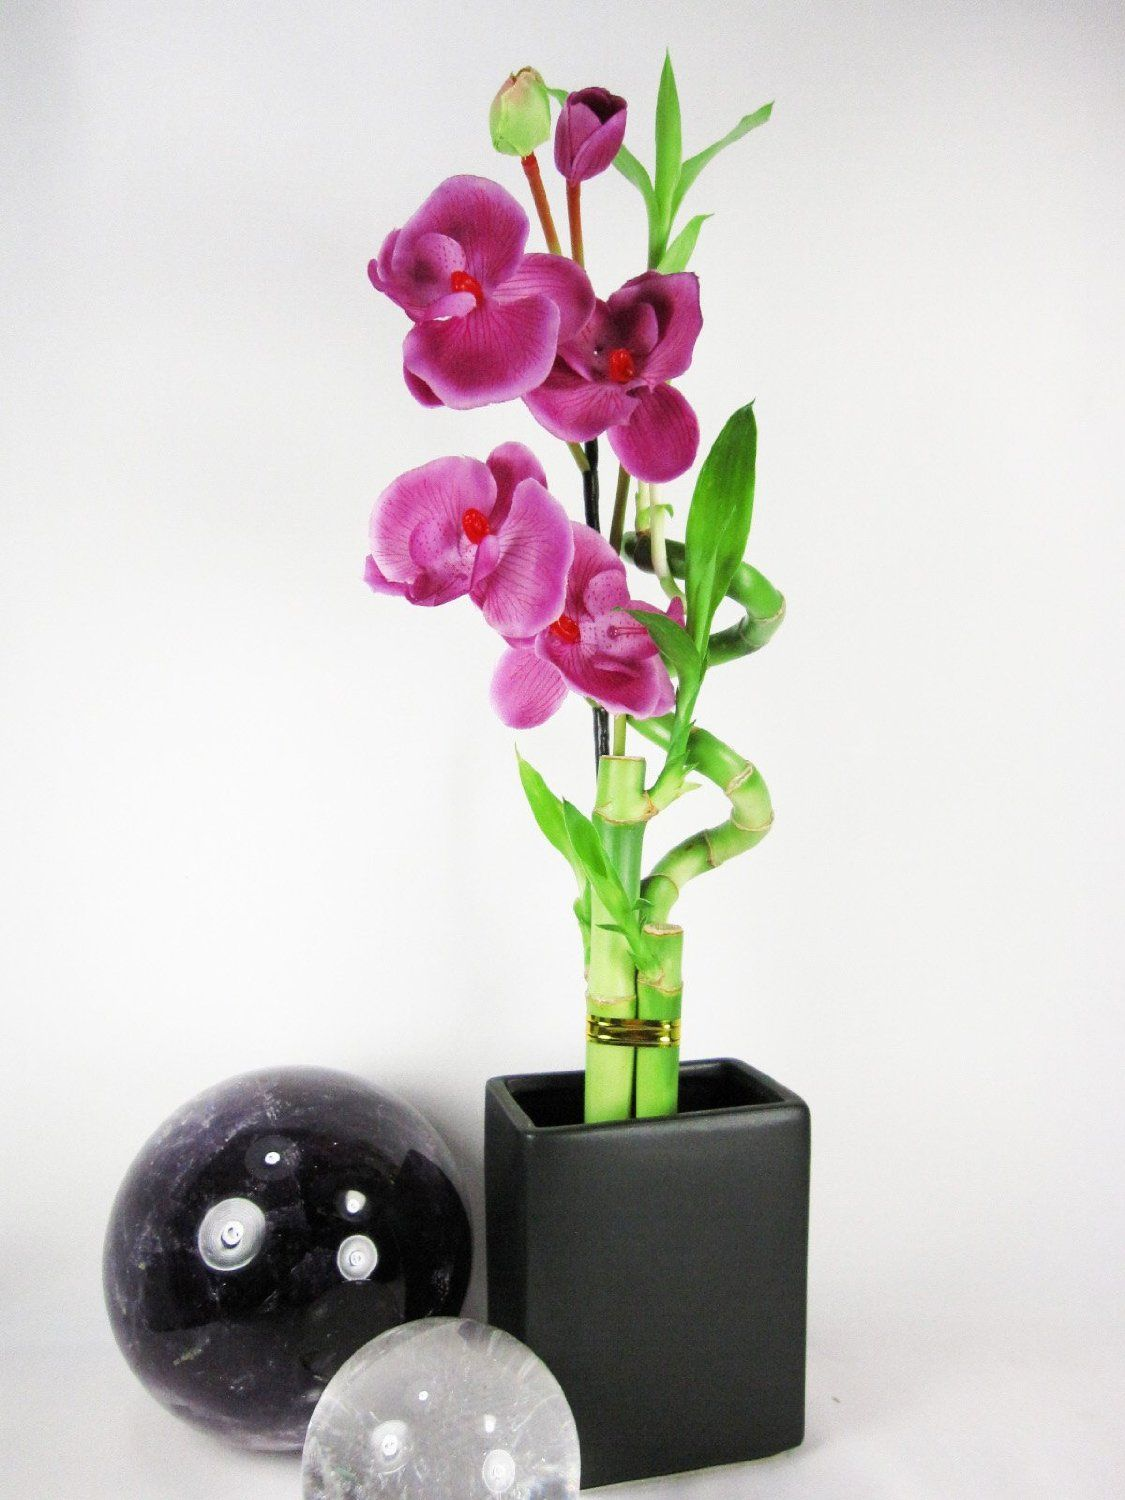 What do the colors of ribbon symbolize on lucky bamboo ehow - 9greenbox Live Spiral 3 Style Lucky Bamboo Plant Arrangement W Black Ceramic Vase